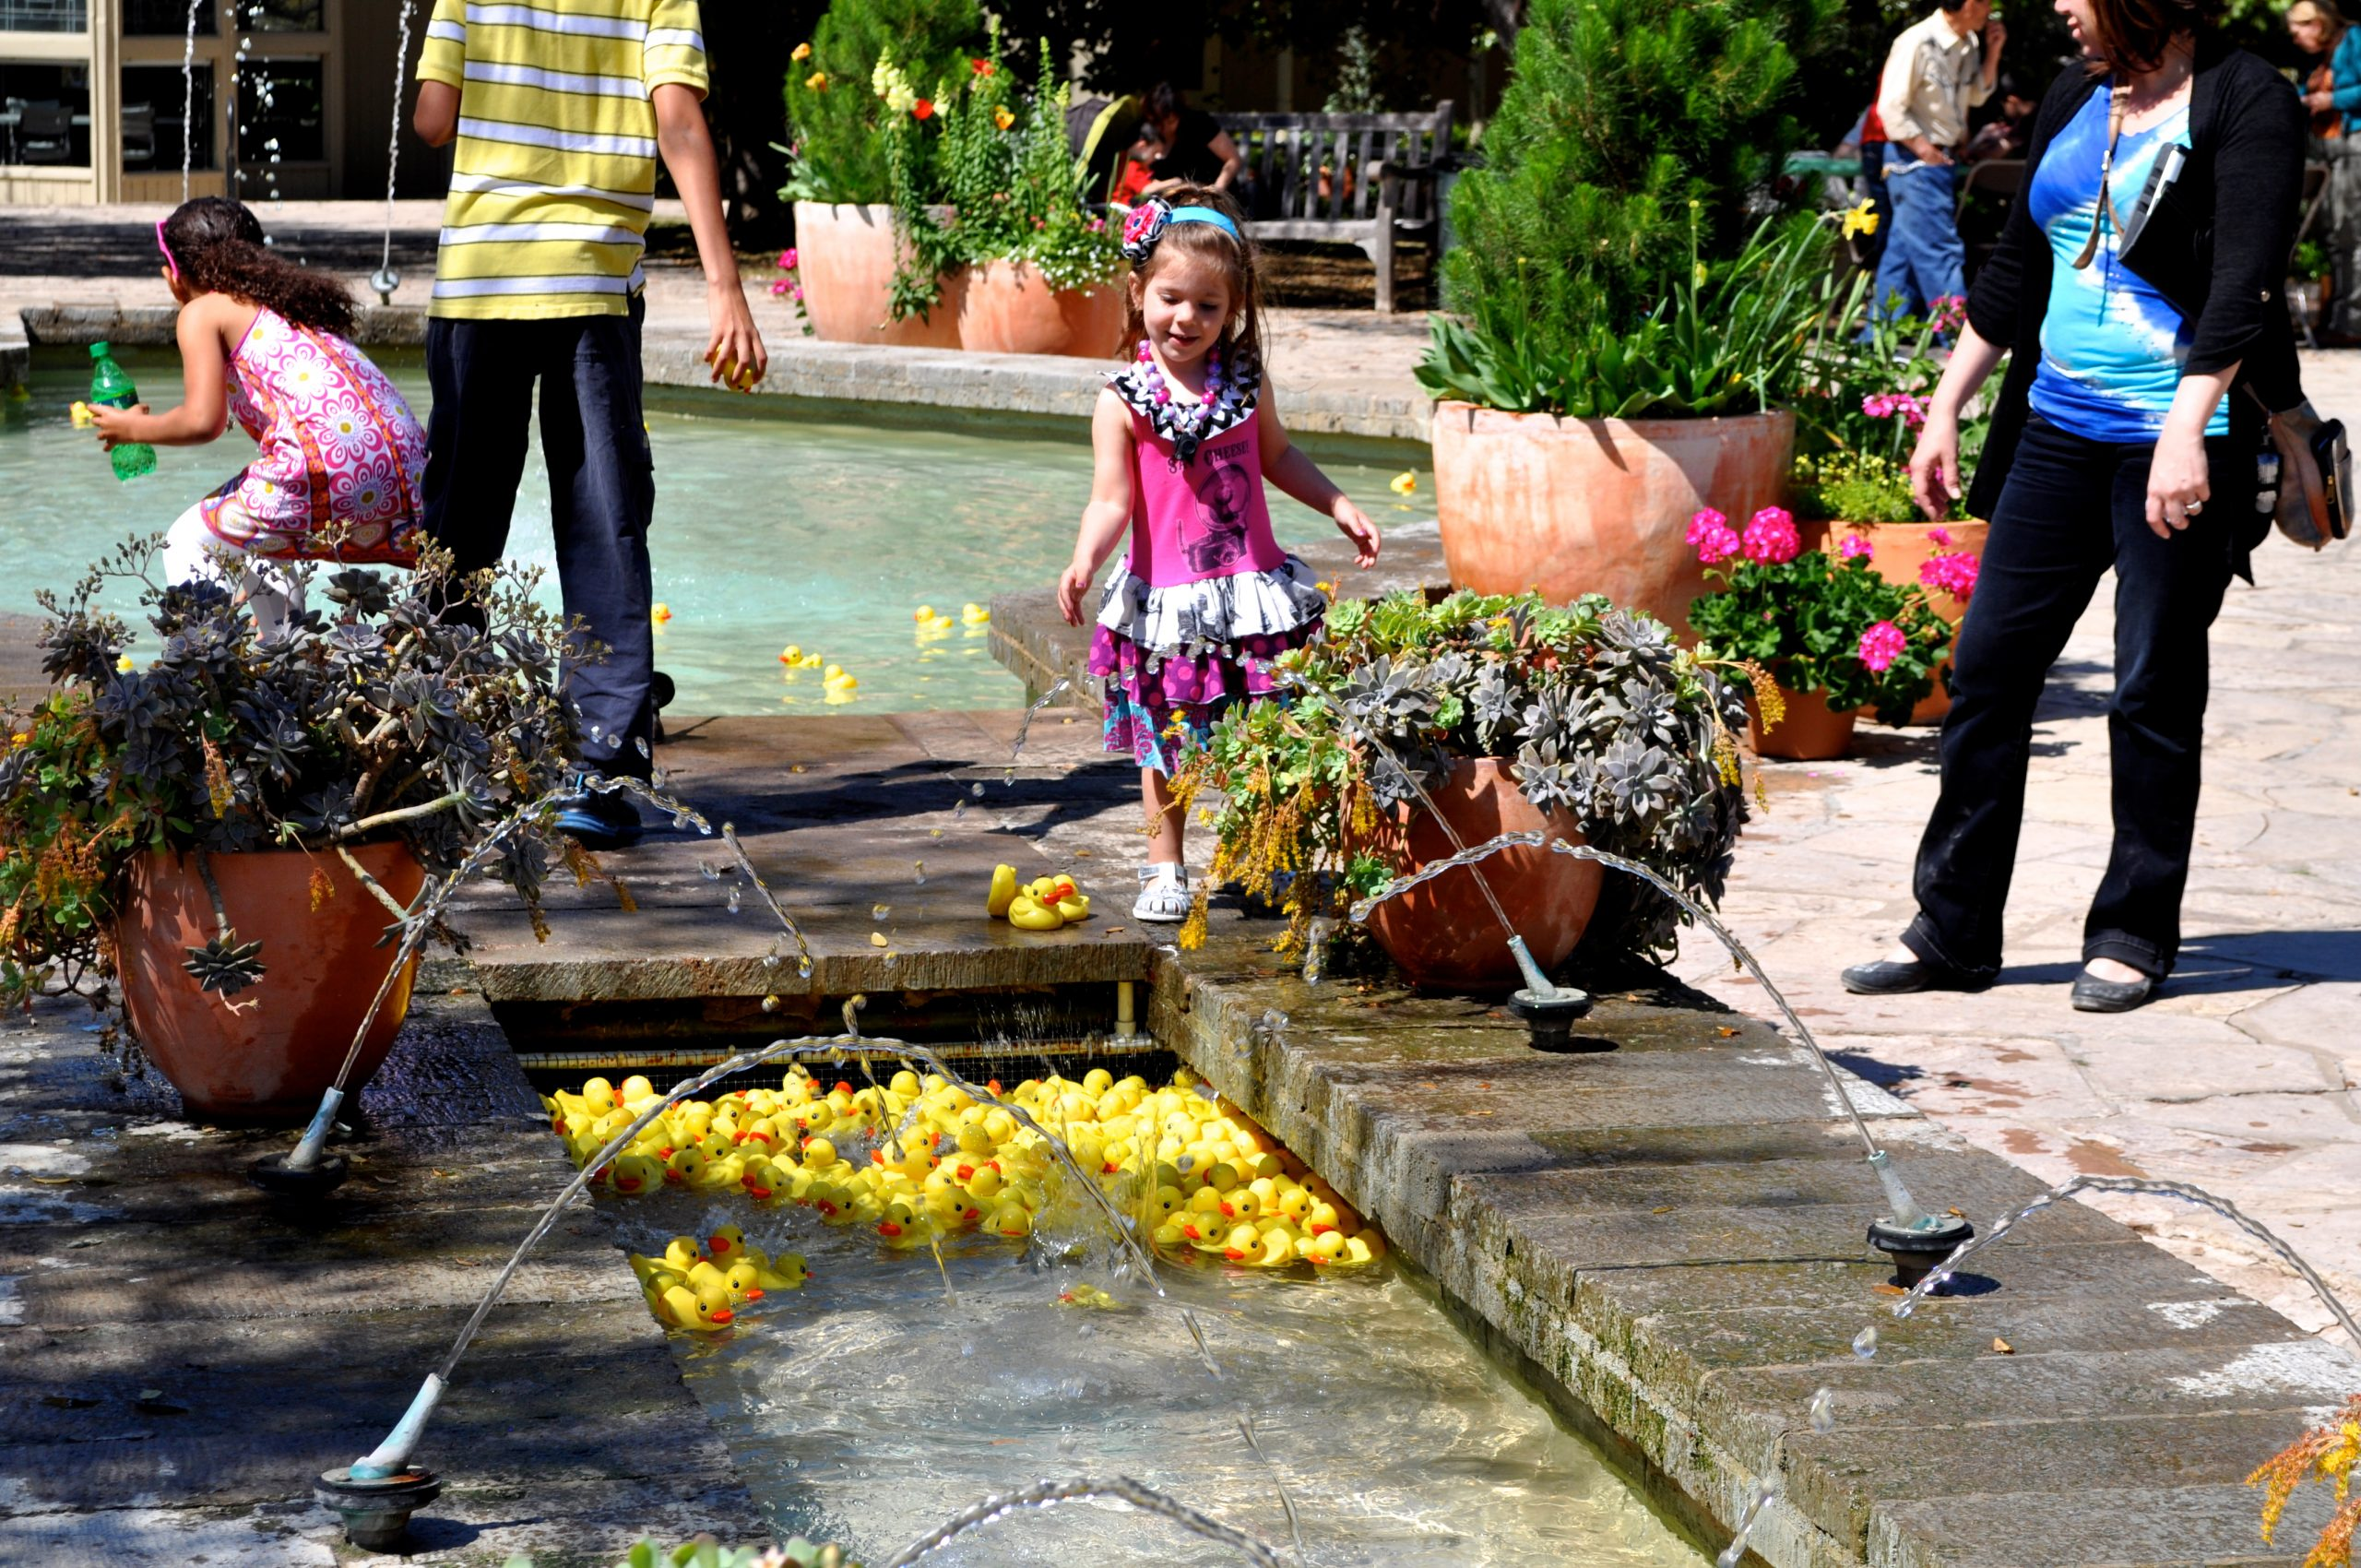 Amber spent a good portion of her afternoon throwing rubber ducks into the fountain at the Botanical Gardens. Not an example of the many educational activities available at the garden .... but an example of easy fun. Photo by Iris Dimmick.